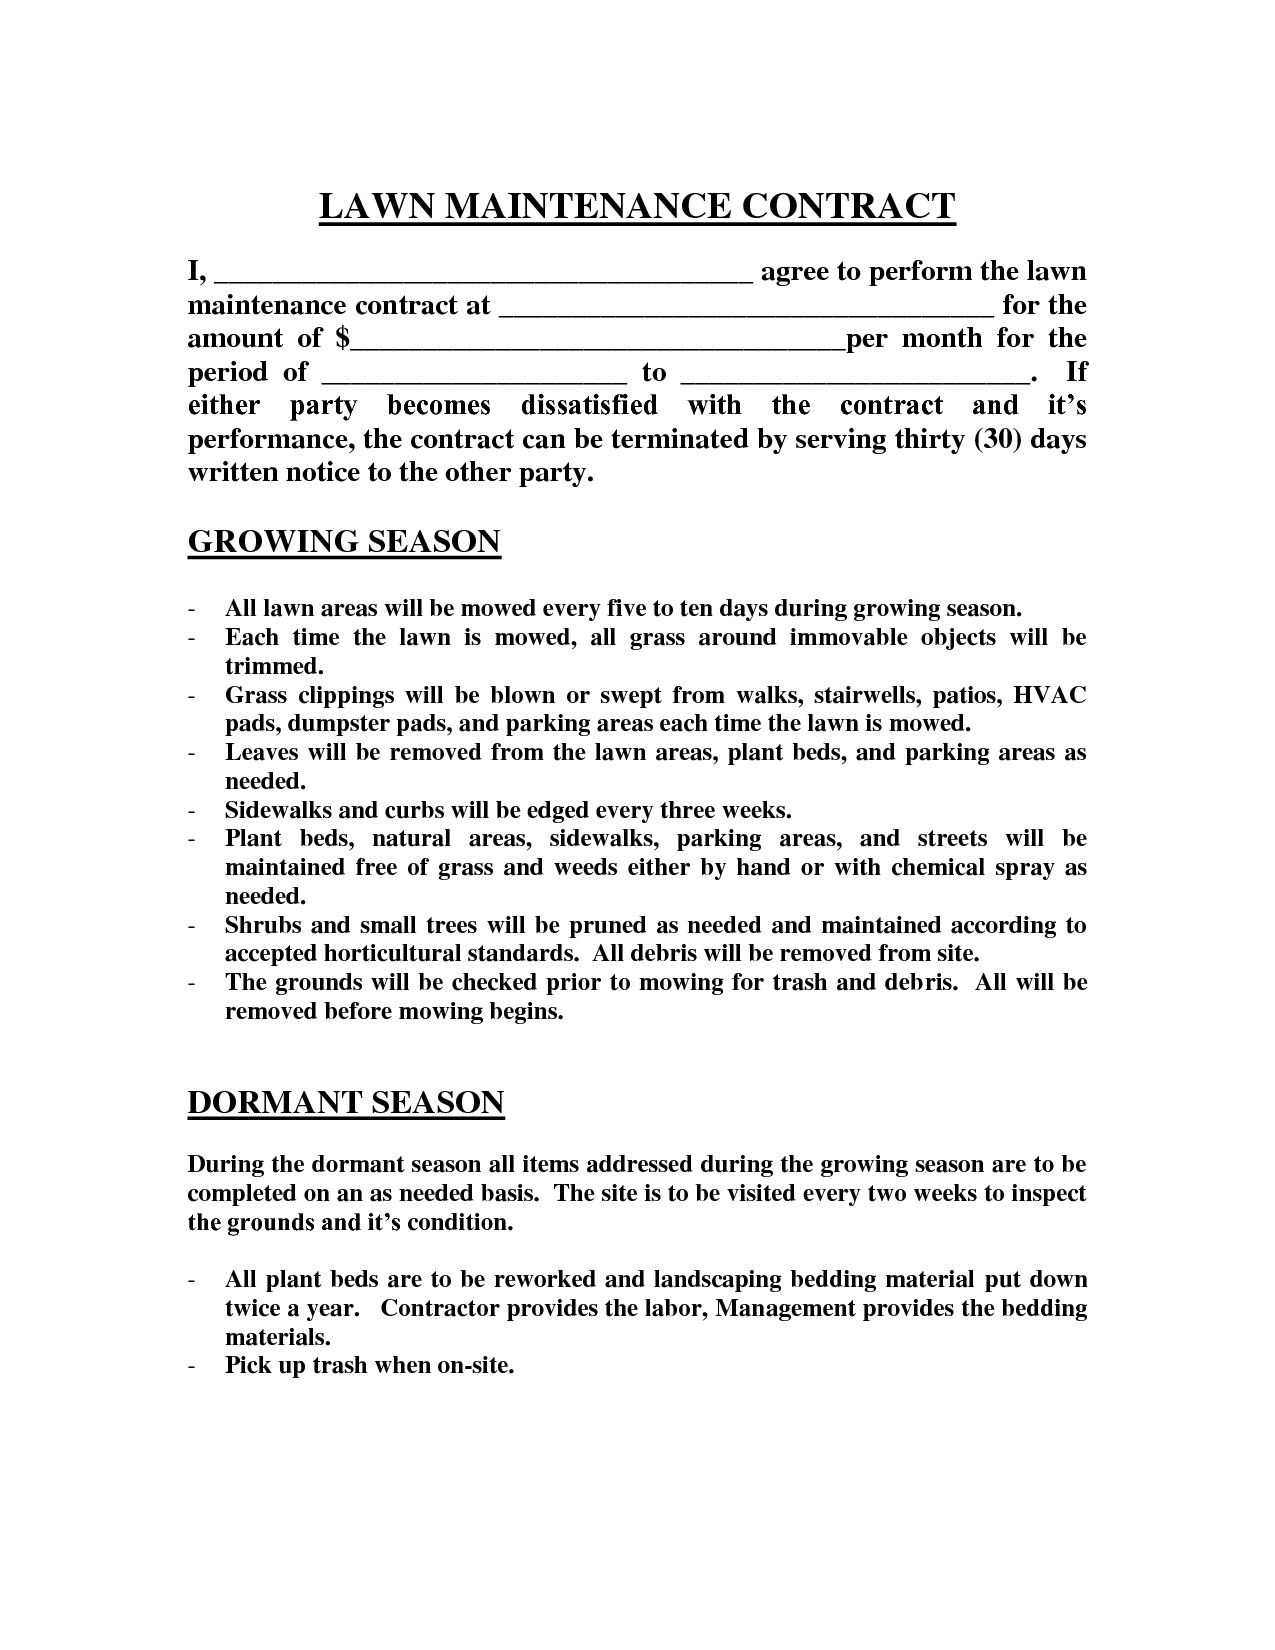 28 Lawn Care Contract Template Free In 2020 Landscape Maintenance Lawn Mowing Business Lawn Maintenance